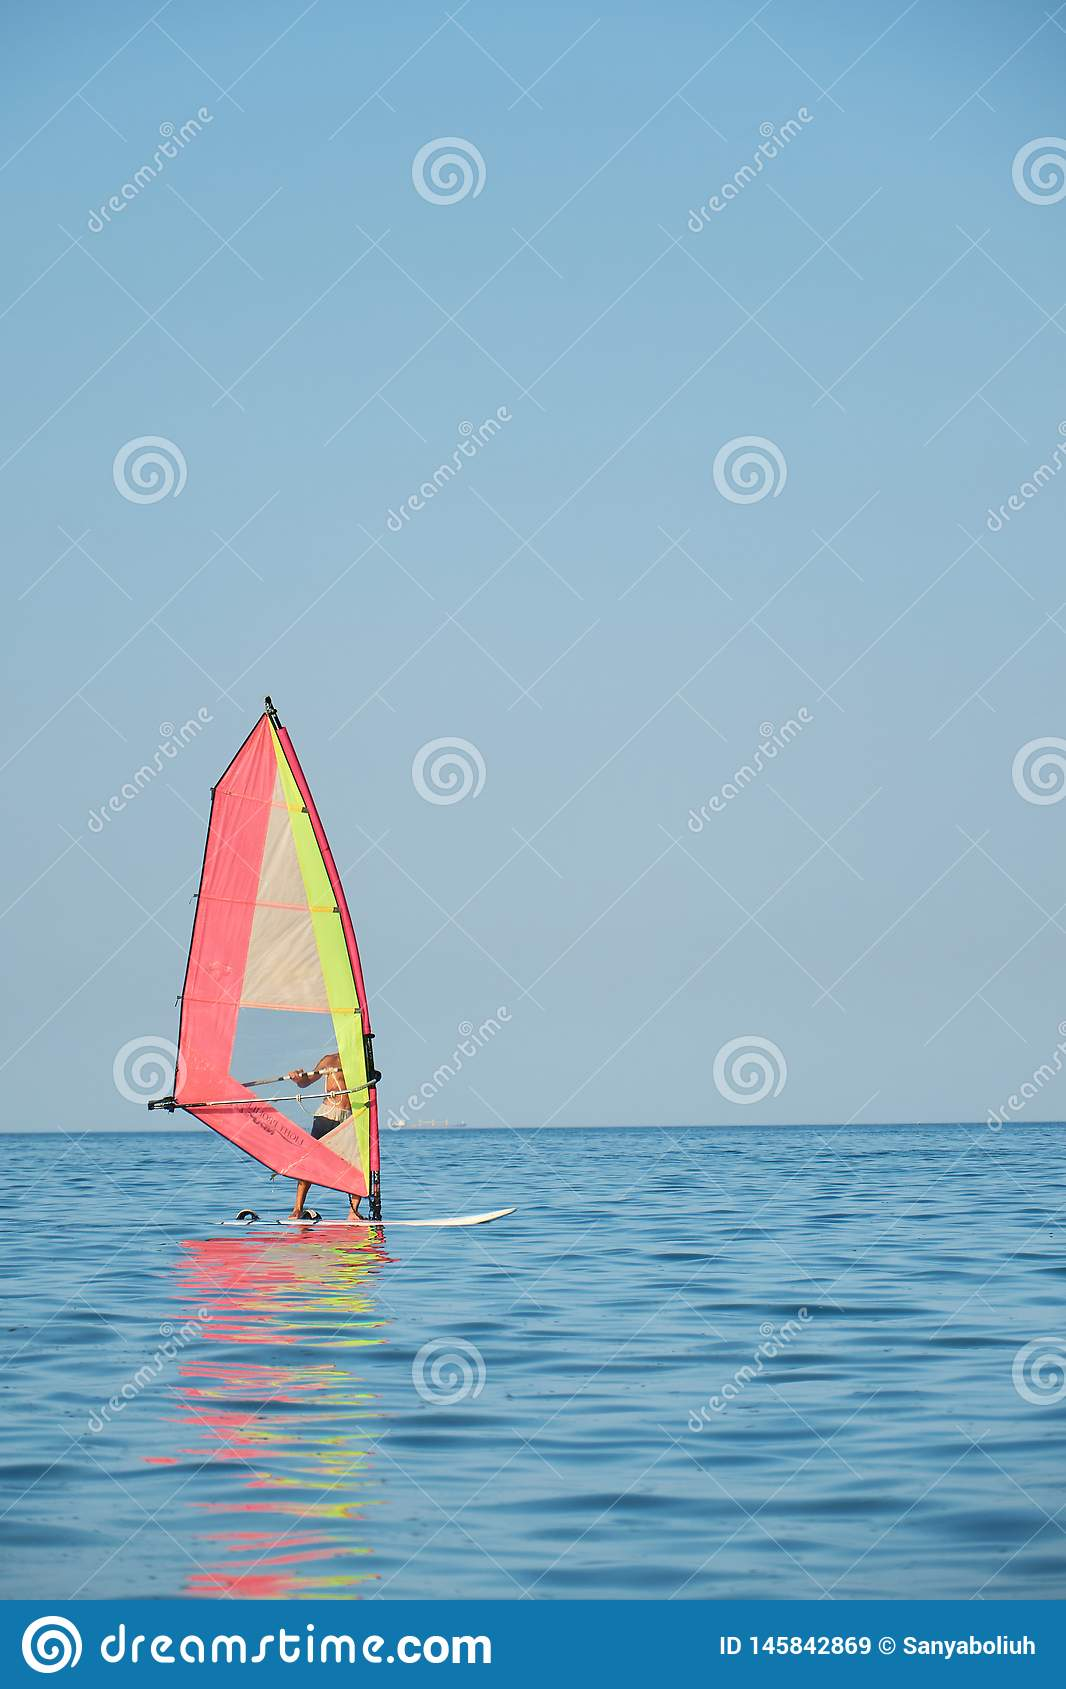 Windsurfing, Fun in the ocean, Extreme Sport on sea background